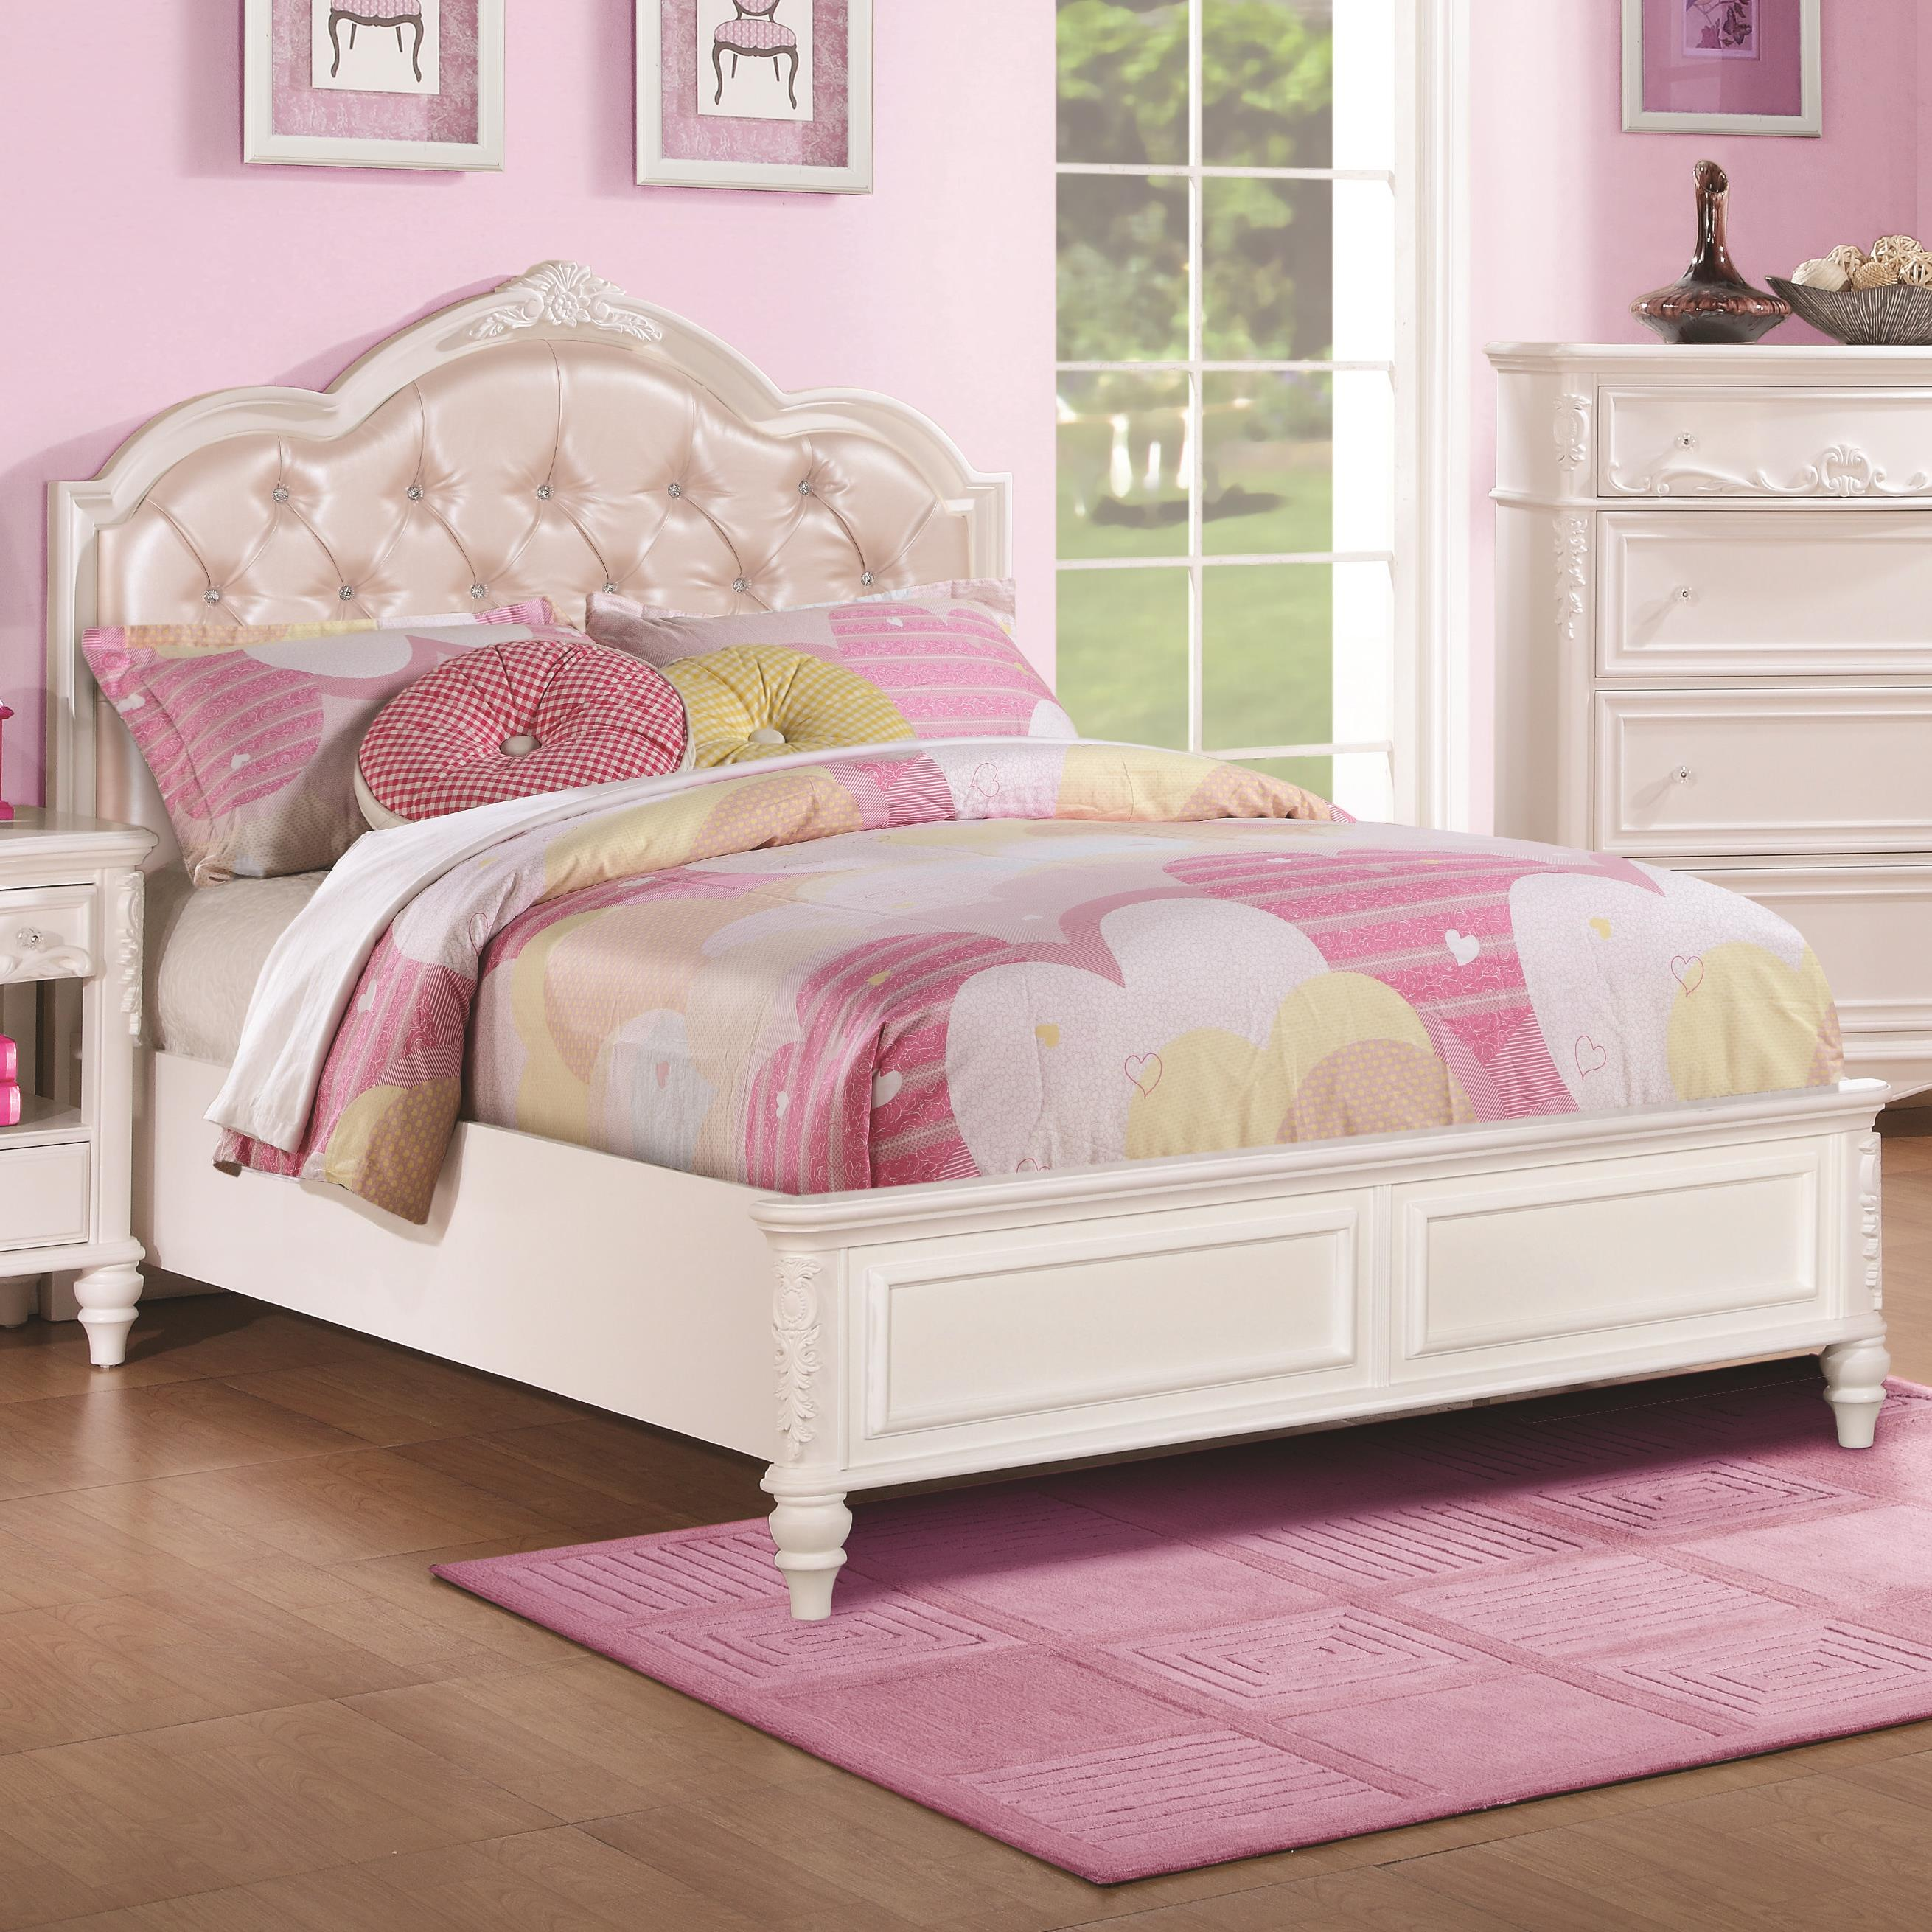 Coaster Caroline 400720t Twin Size Bed And Diamond Tufted Headboard Northeast Factory Direct Upholstered Beds